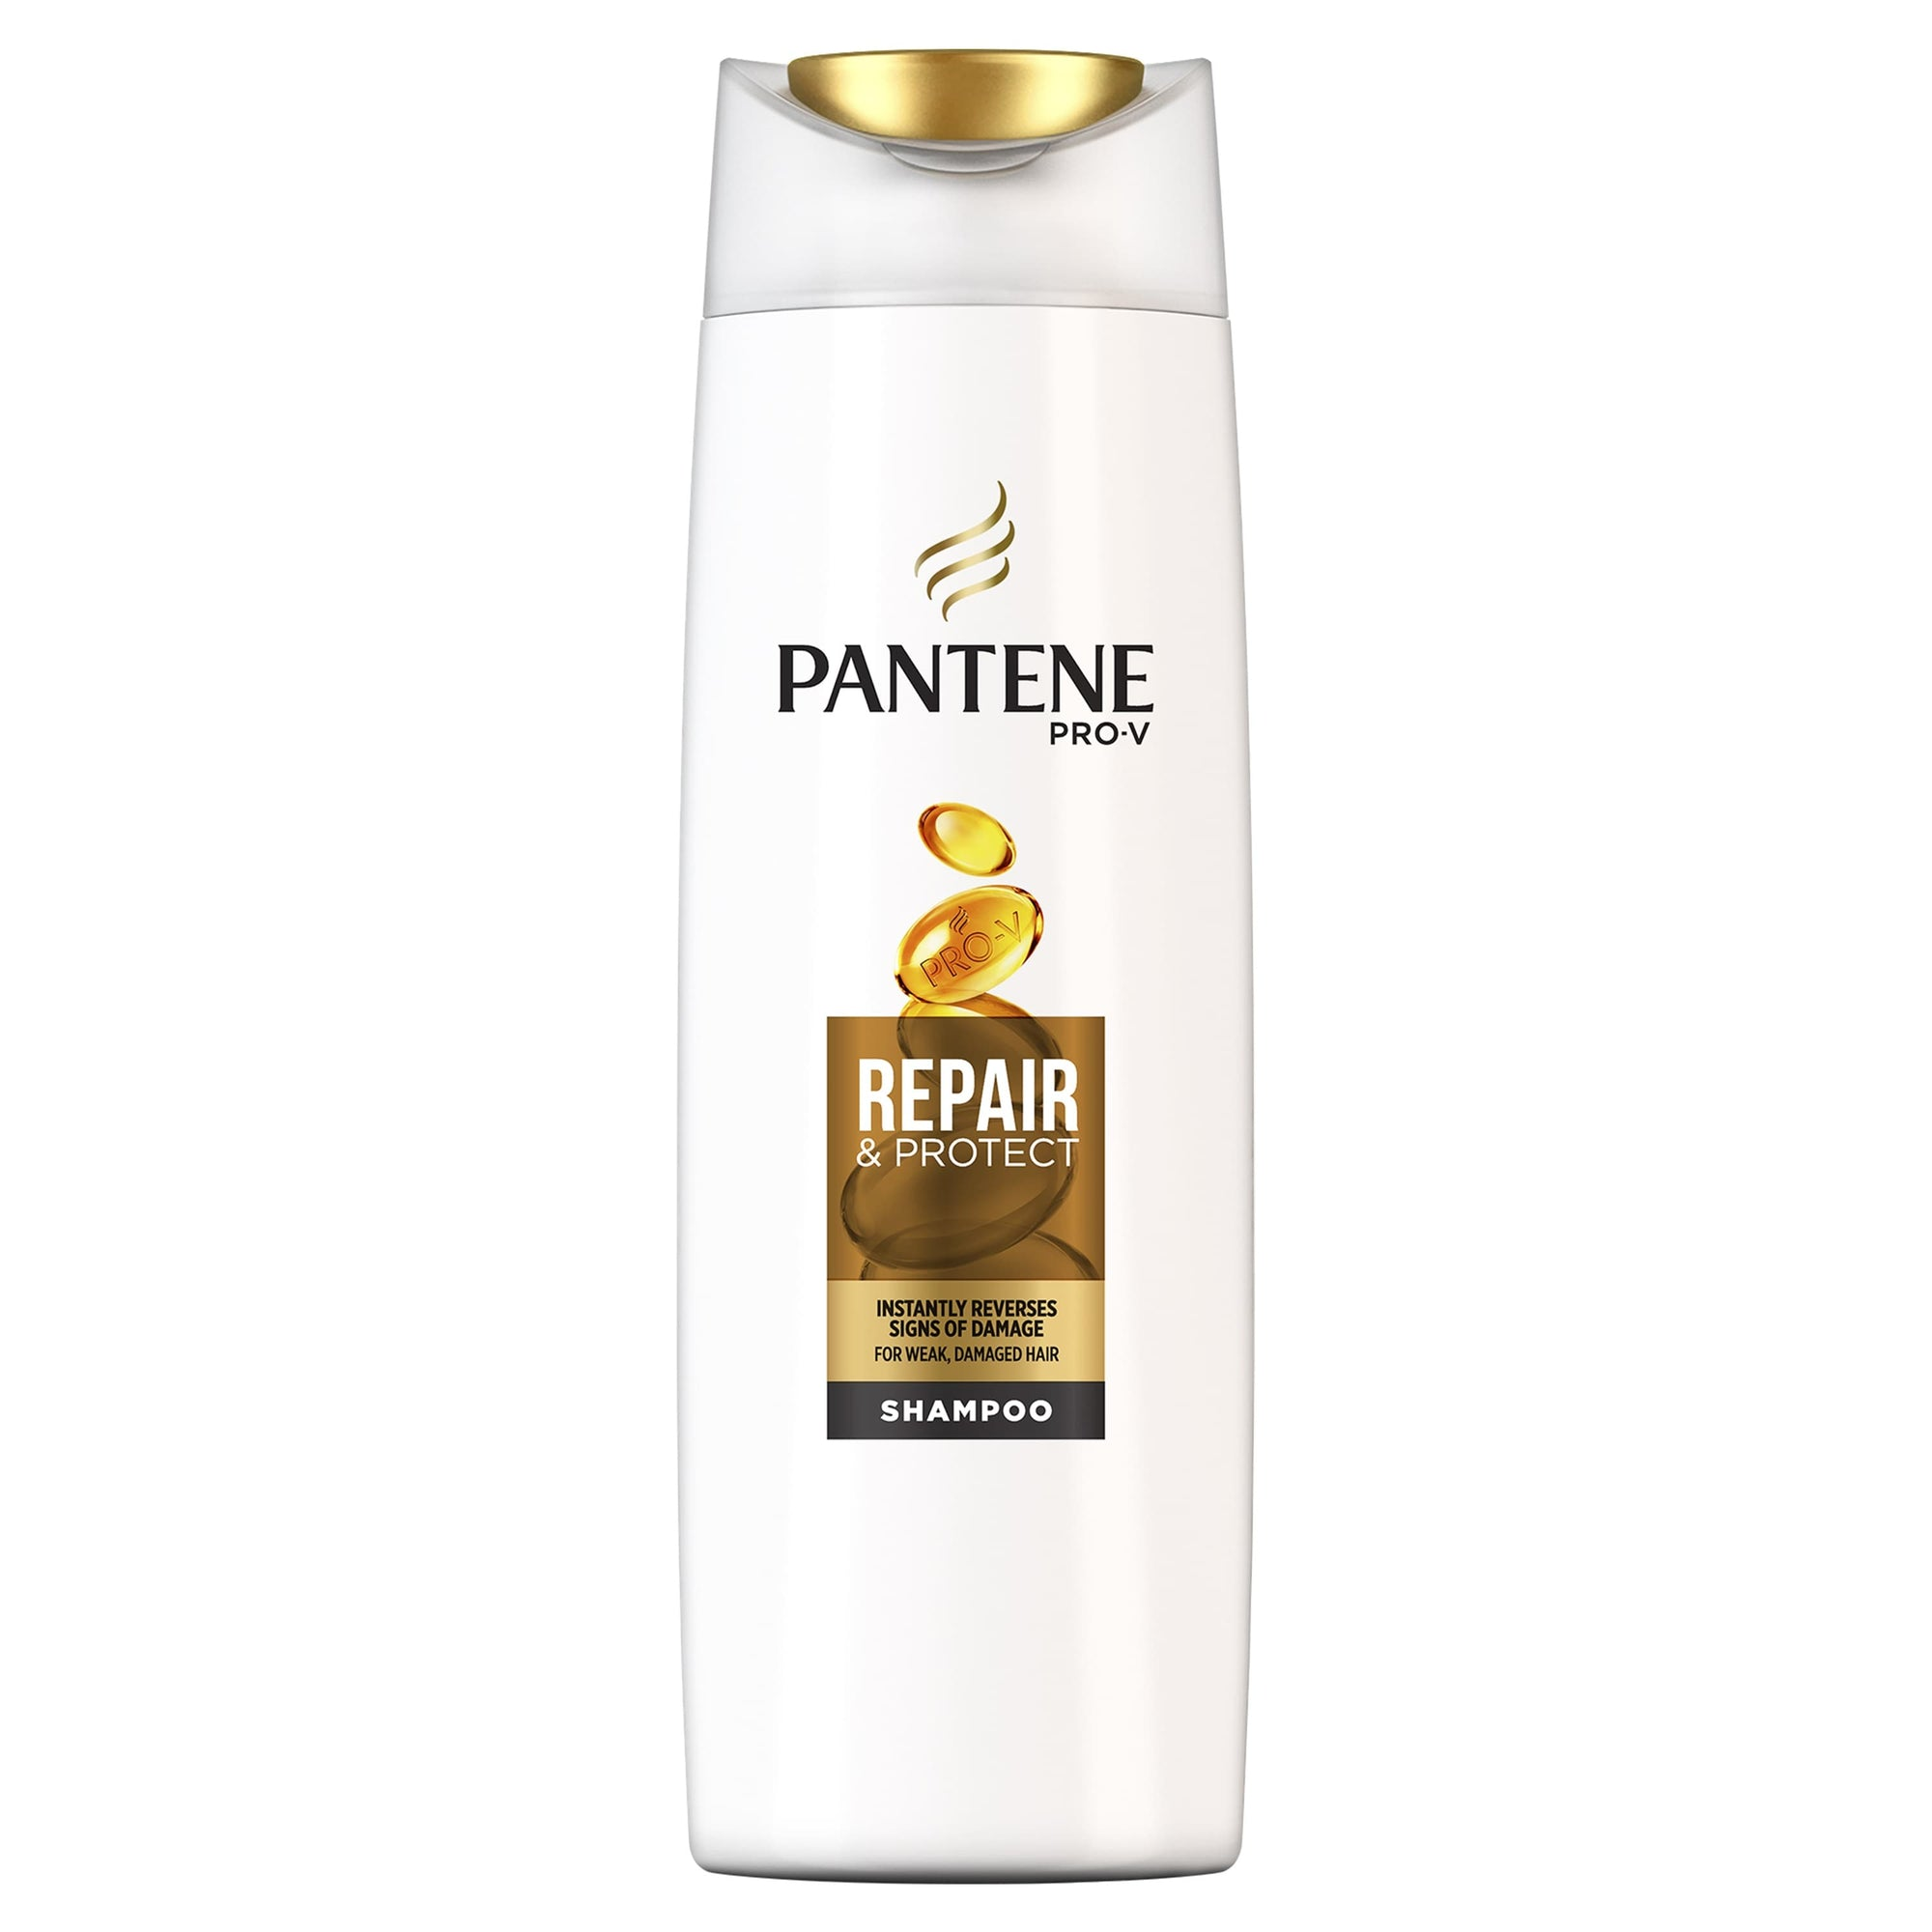 Pantene Repair and Protect Shampoo 360ML